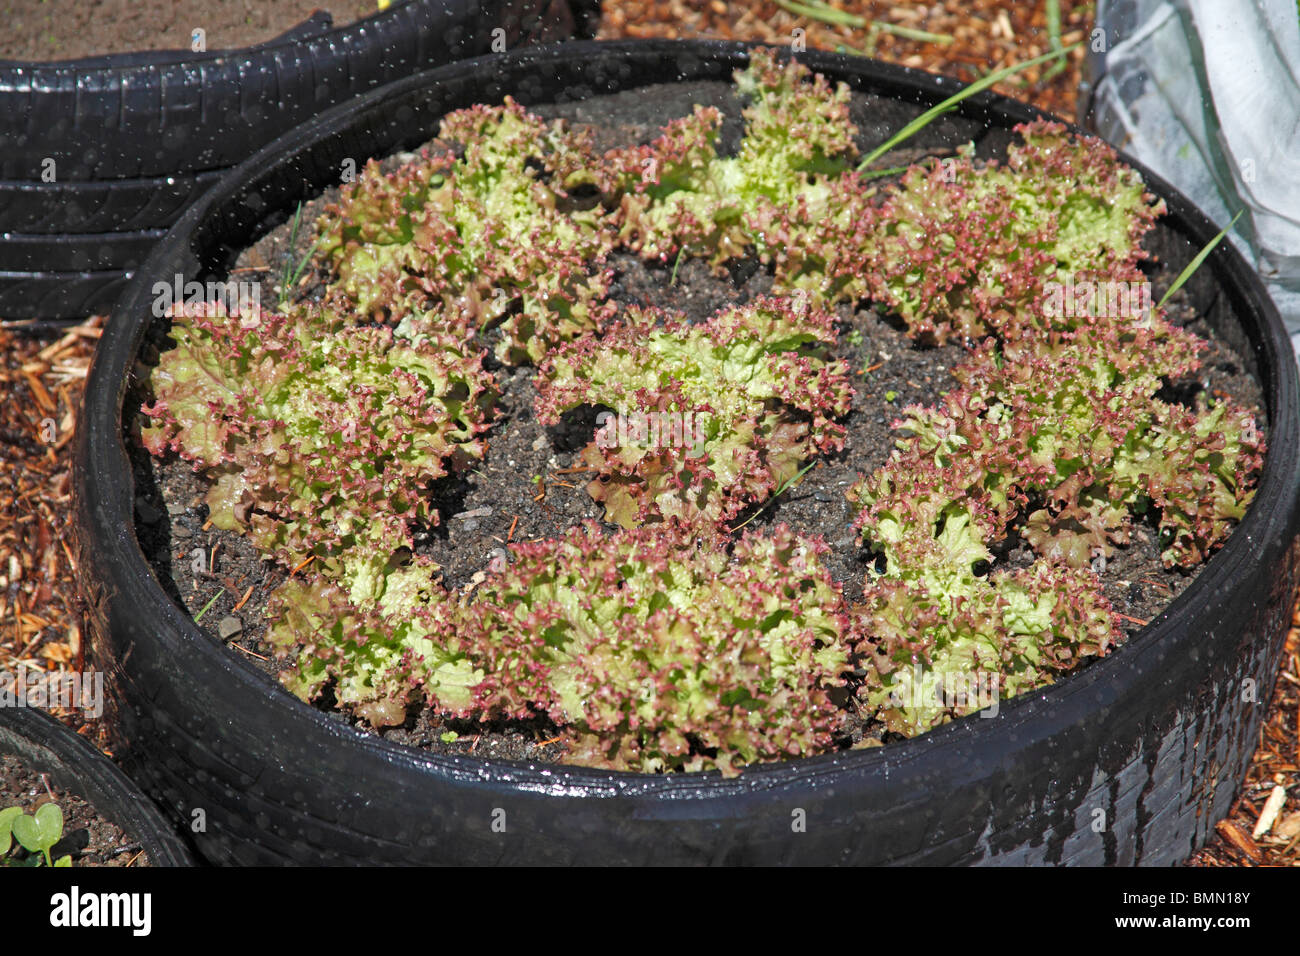 Lettuce (Lactuca sativa) growing in tyre - Stock Image